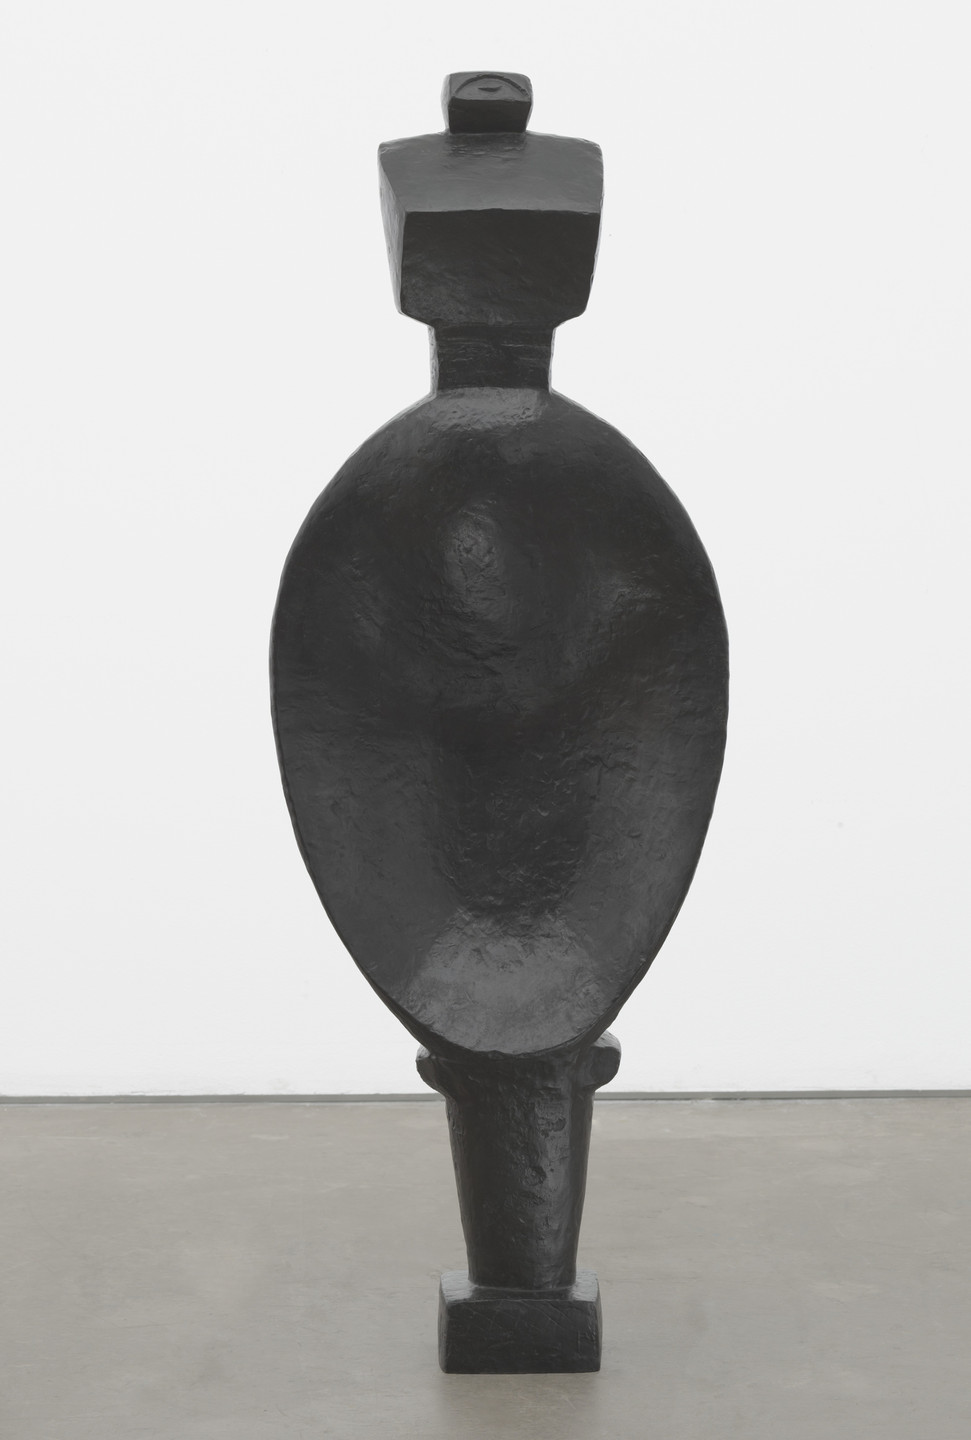 Alberto Giacometti. Spoon Woman. 1926-27 (cast 1976)